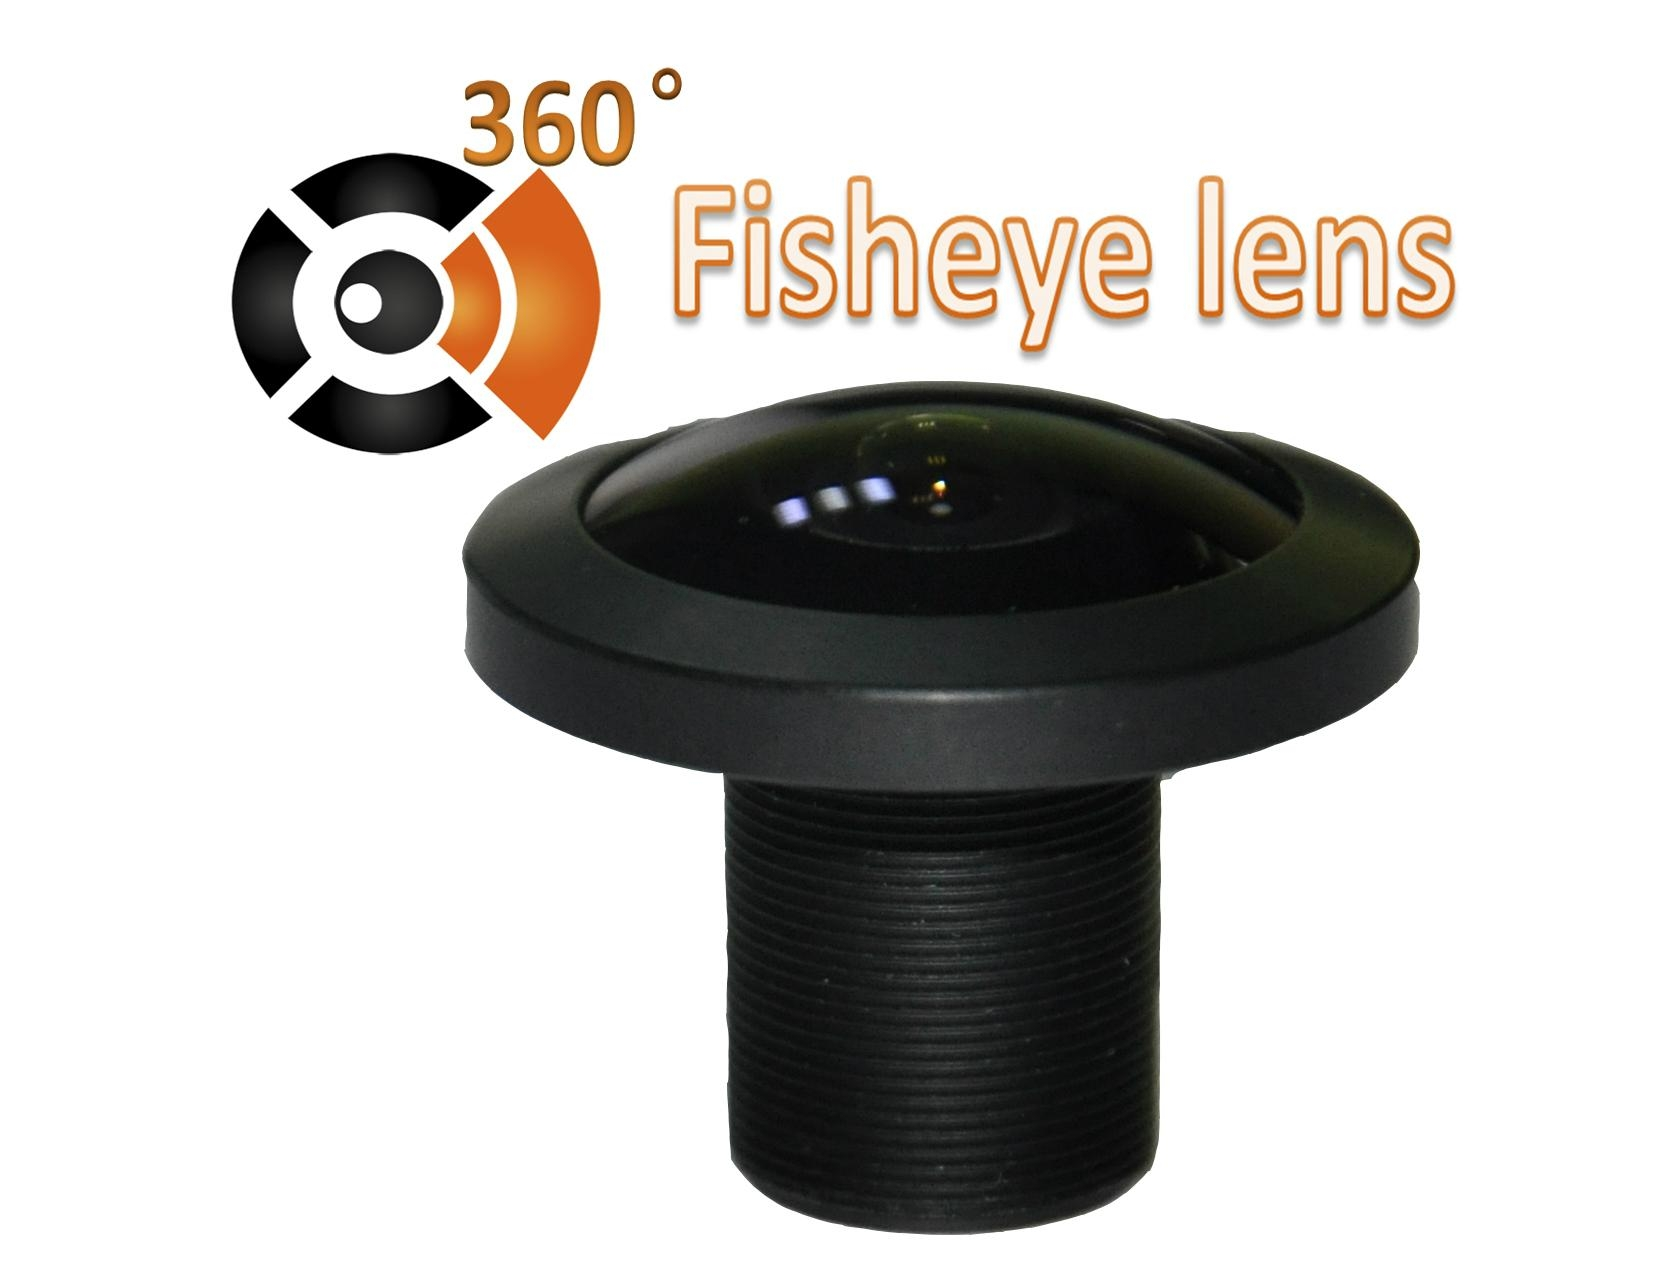 XS-6002 5megapixel super-wide angle fisheye lens for 360 degree action camera 1